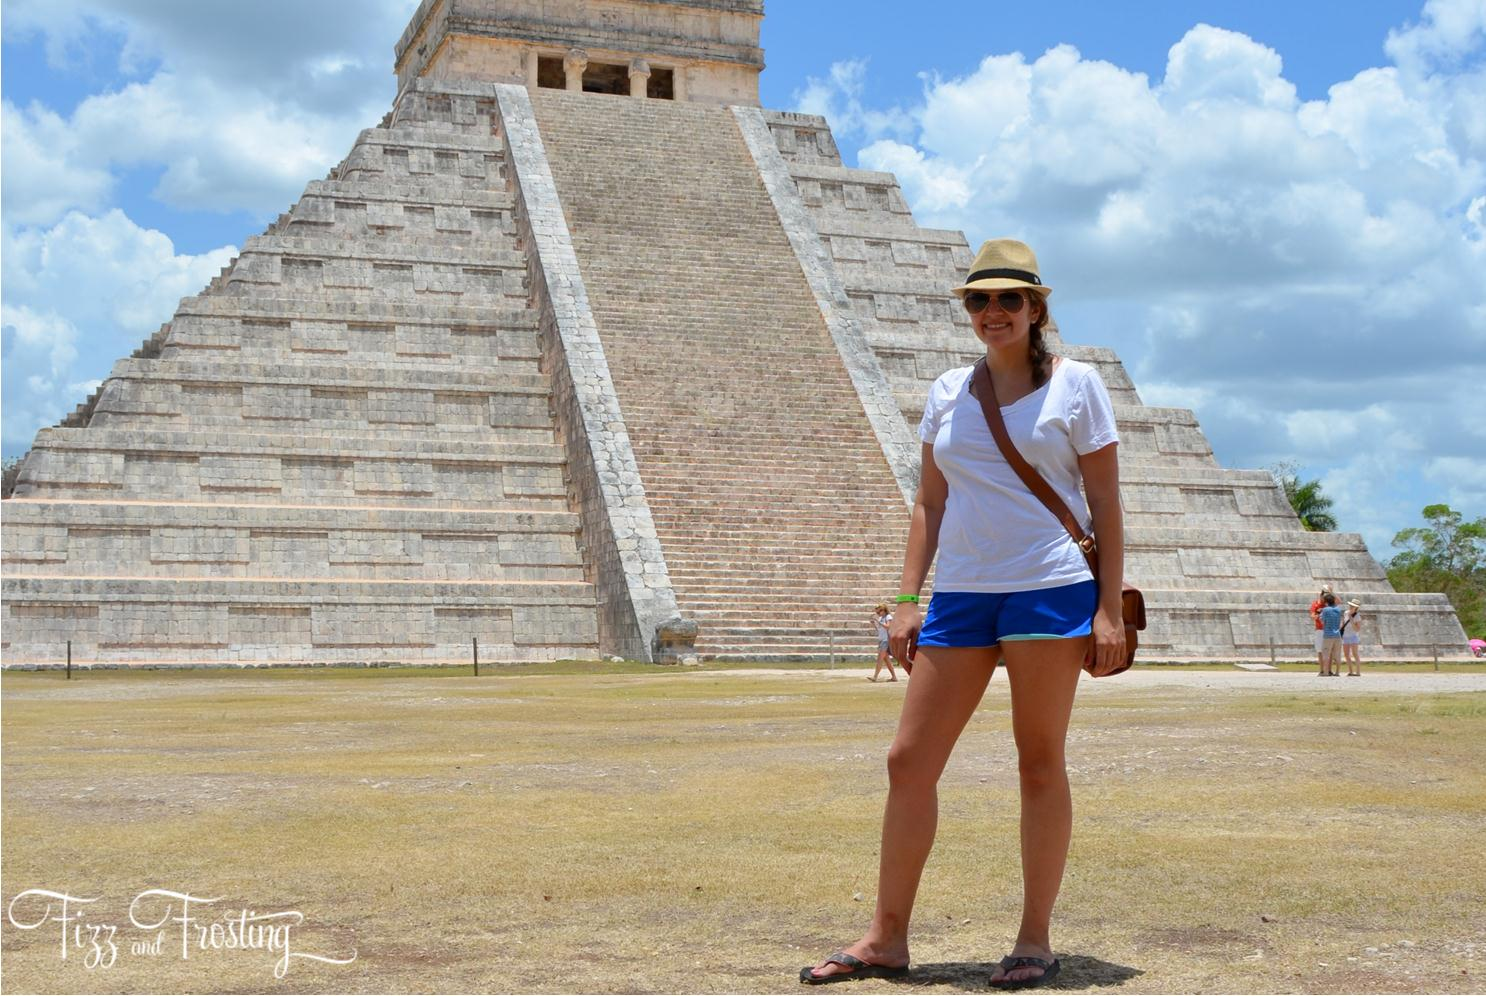 Sites to see near Cancun - Visiting Chichen Itza temples. Click through to see about the other sites you won't want to miss! | www.bylaurenm.com